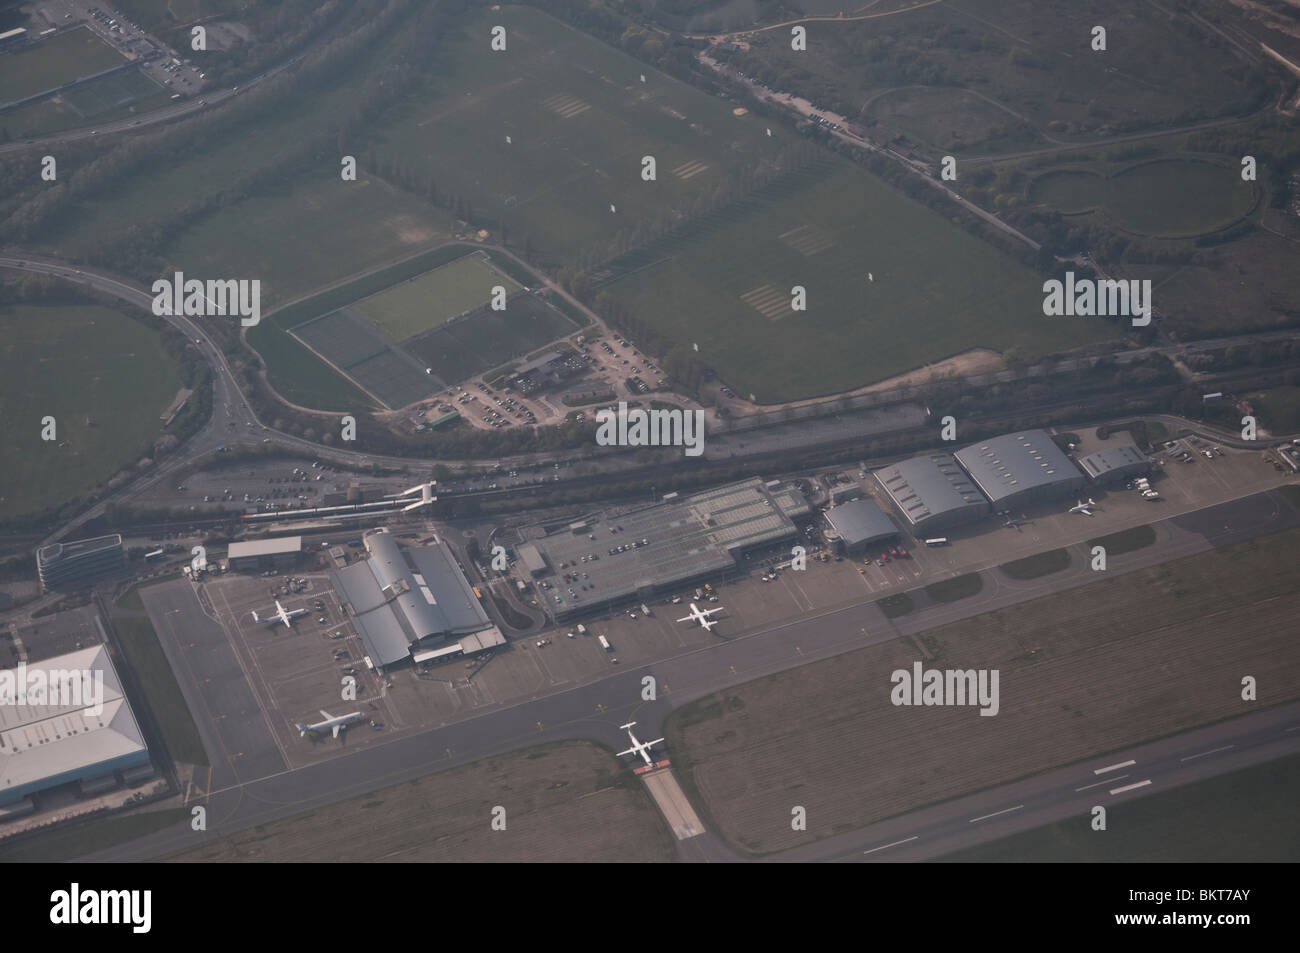 Southampton Airport seen from an airplane. - Stock Image